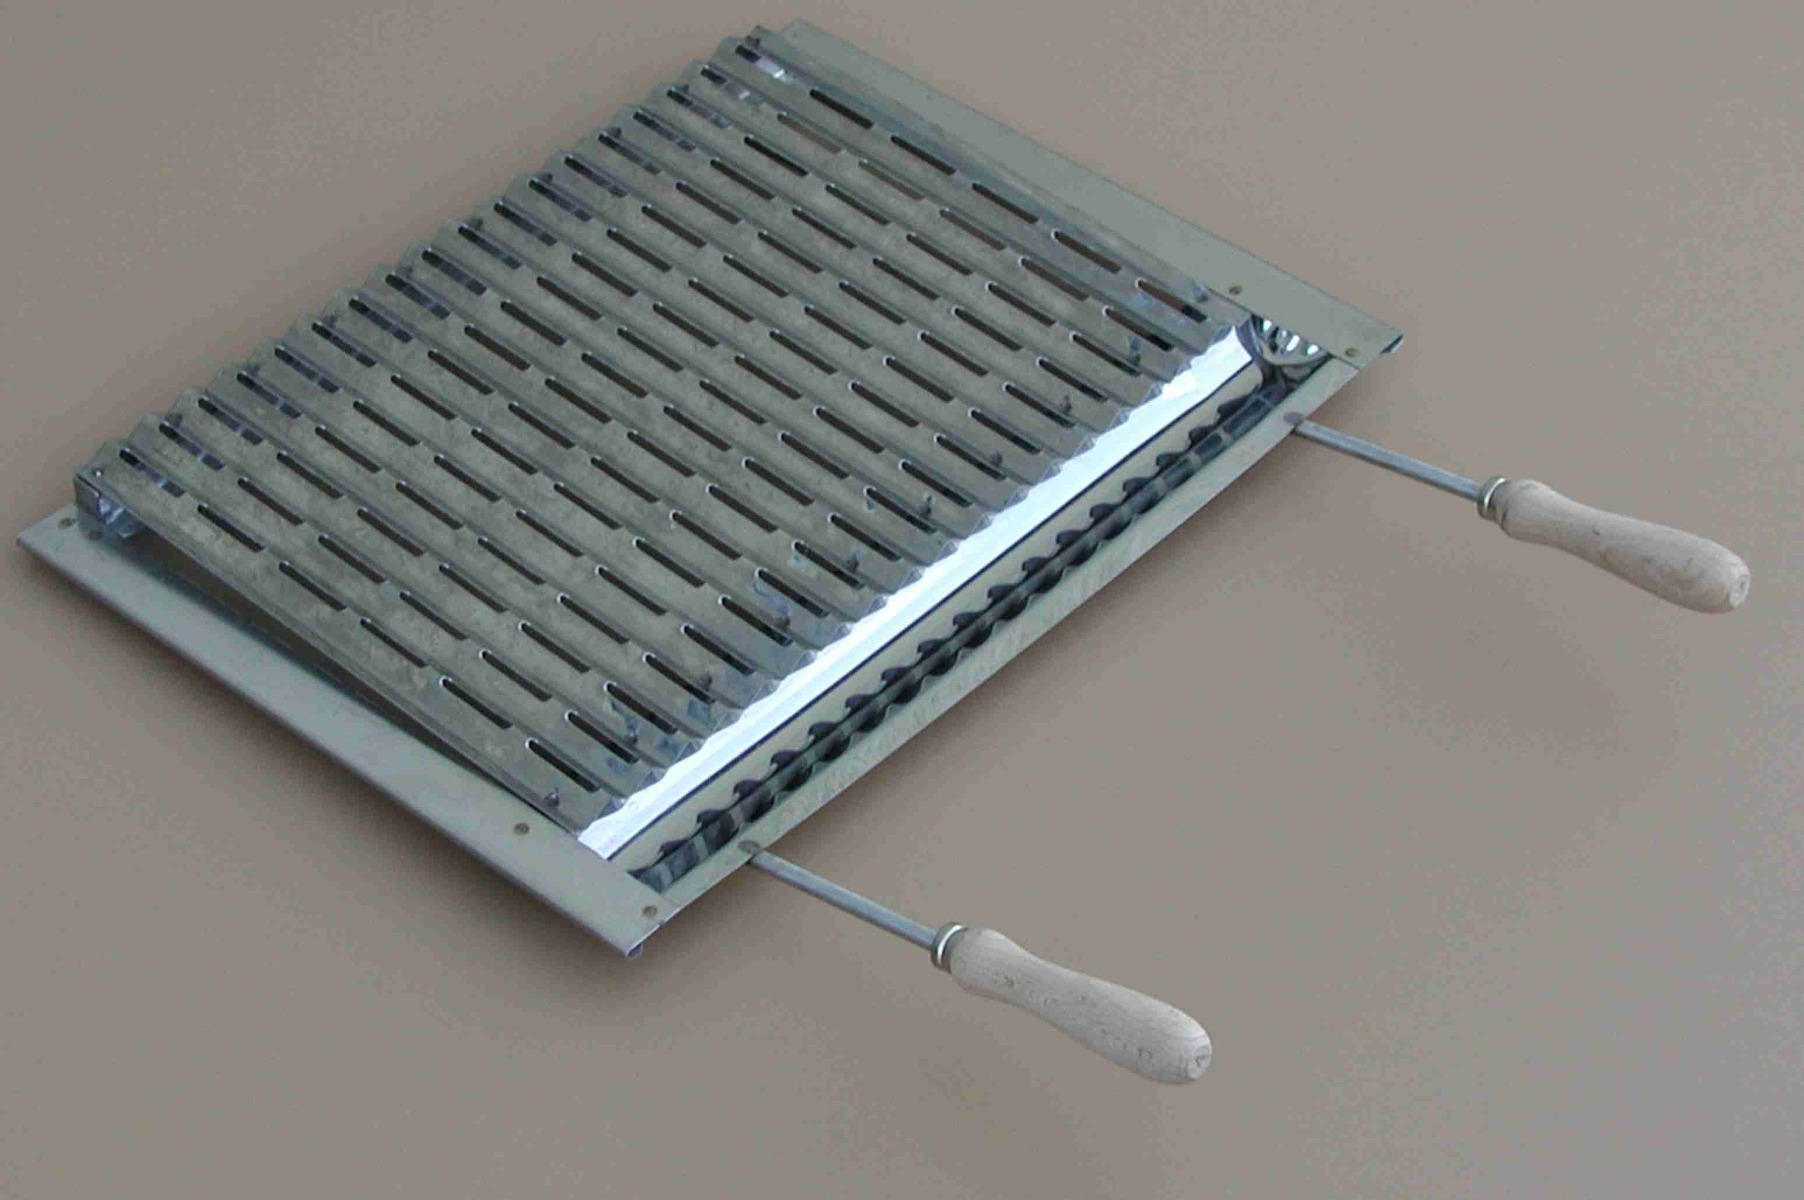 Grill grid stainless steel for barbecue masonry 55x35cm from Intergard